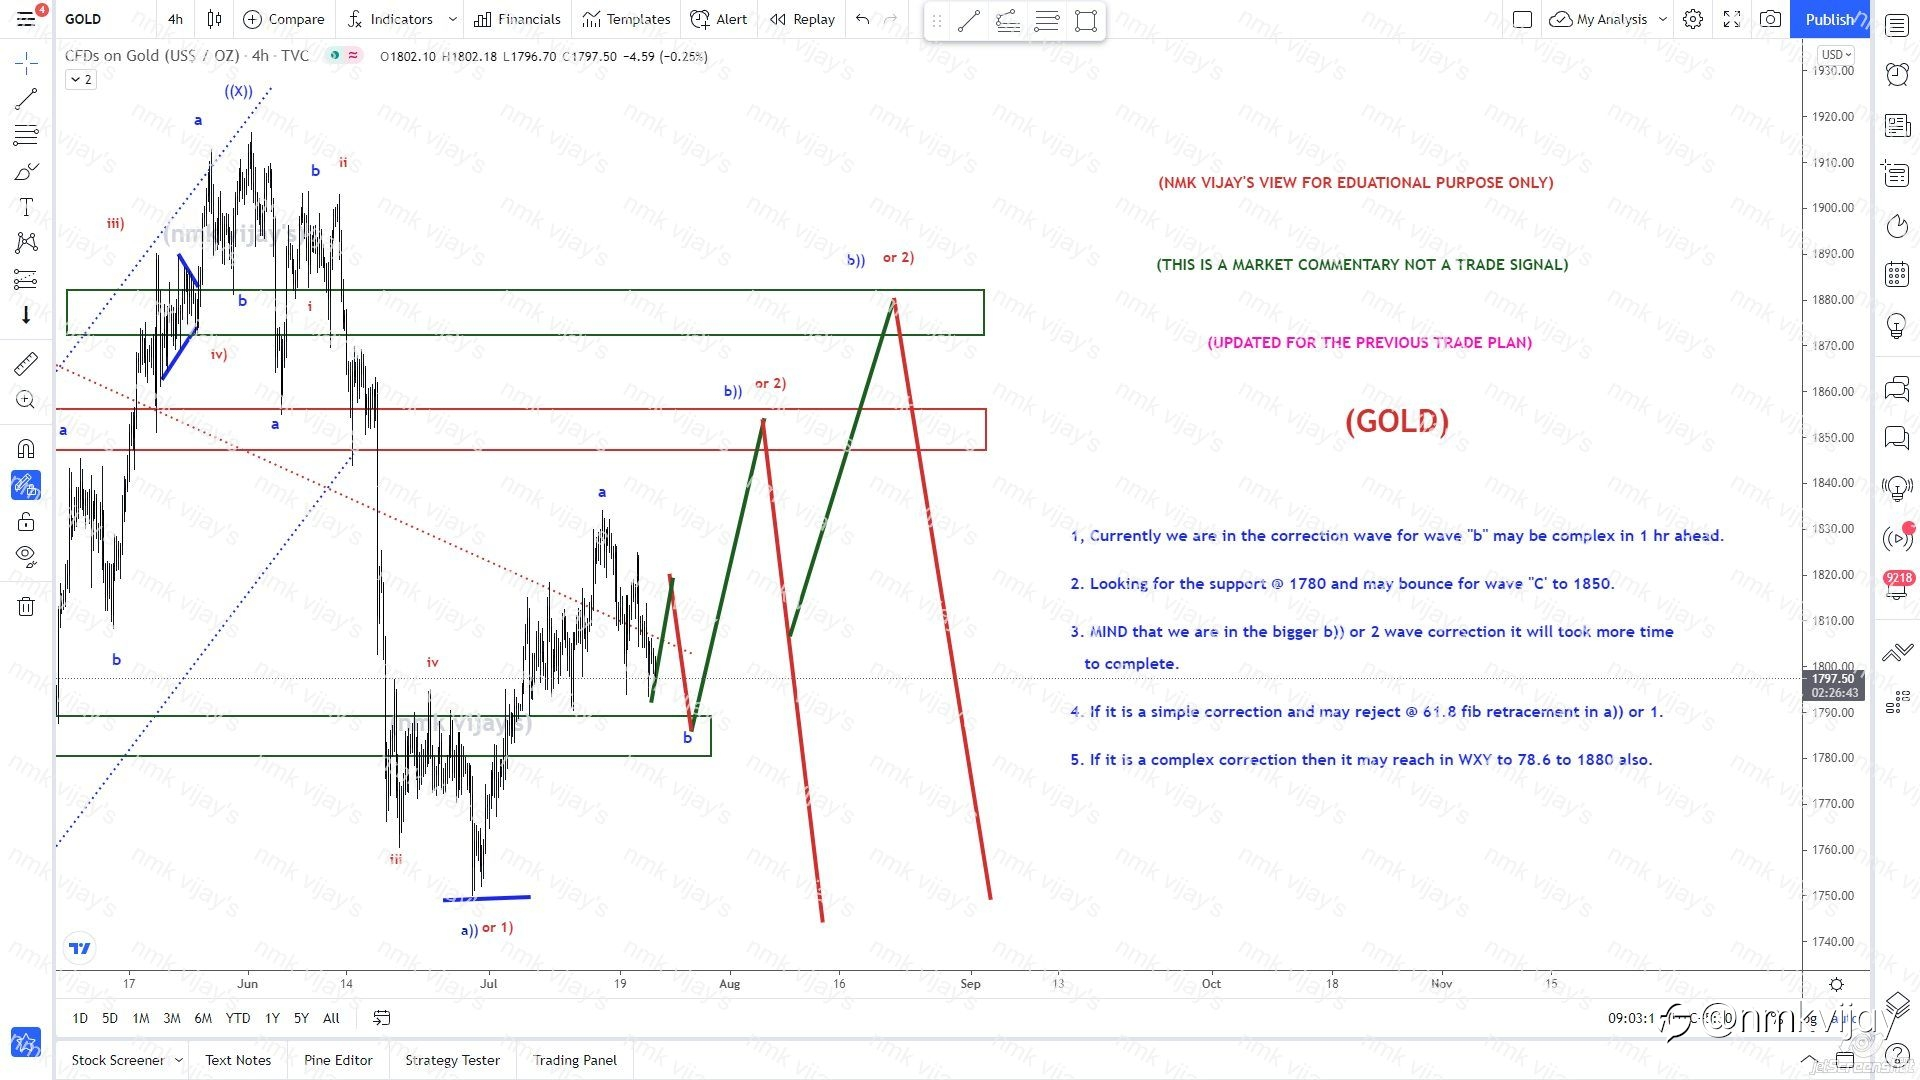 GOLD-Doing correction for b)) or 2) will took more time ...